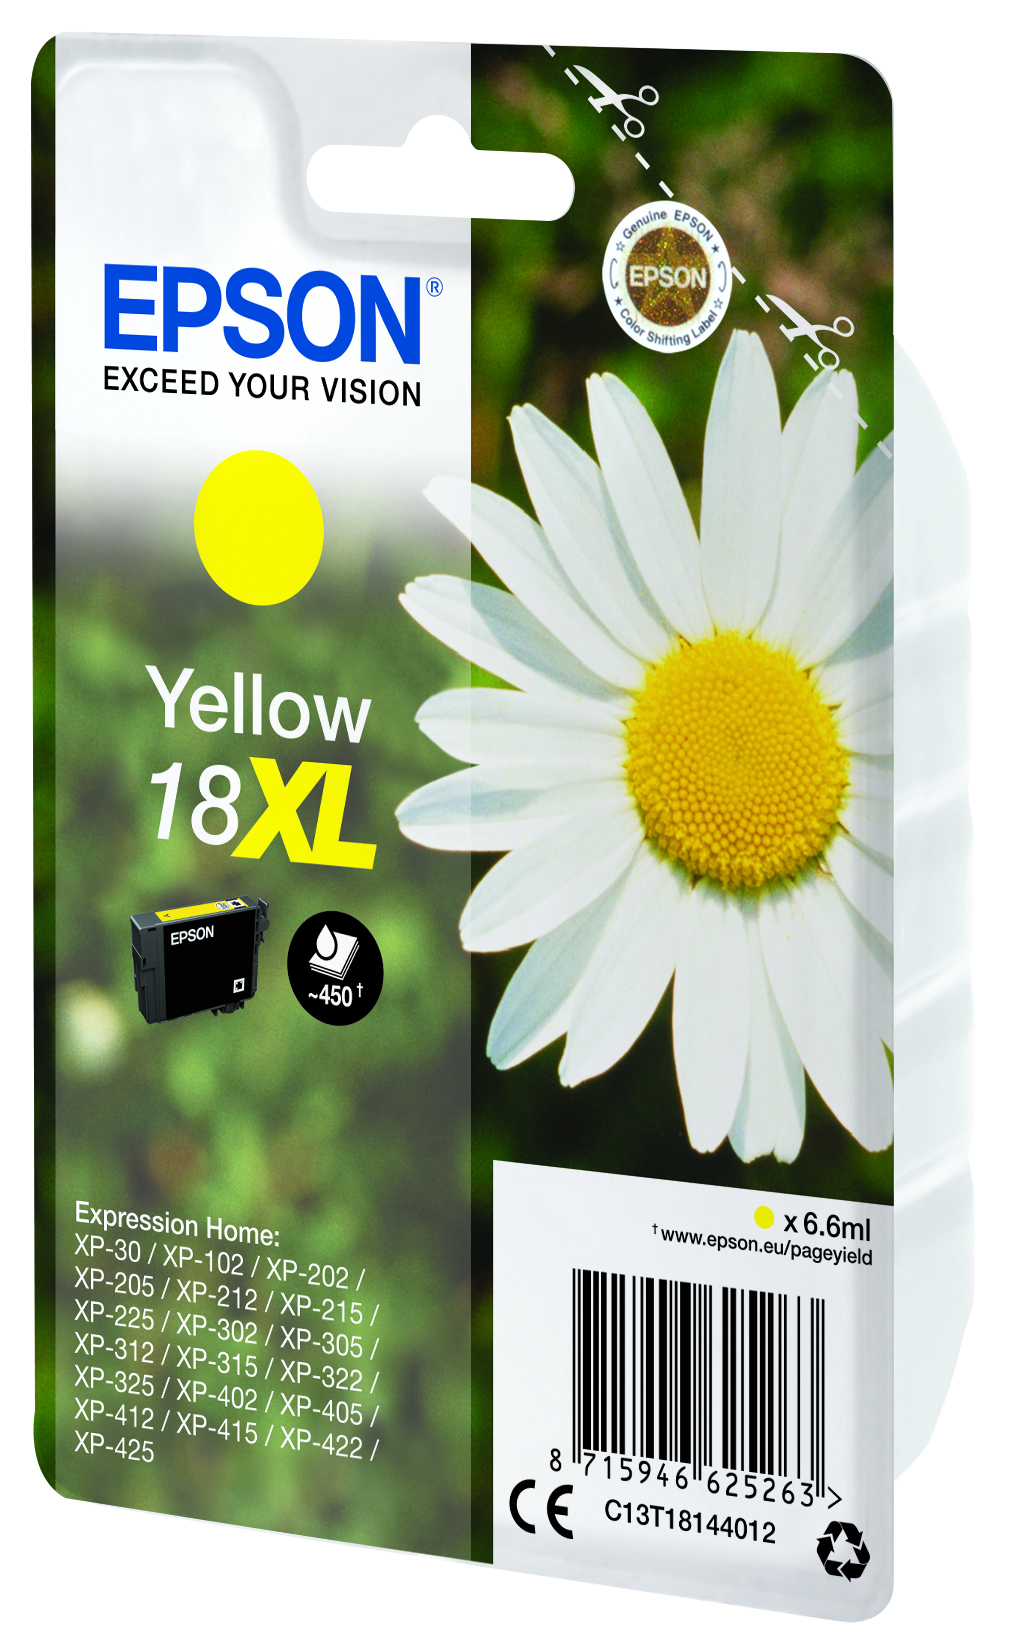 Epson originální ink C13T18144022, T181440, 18XL, yellow, 6, 6ml, Epson Expression Home XP-102, XP-4